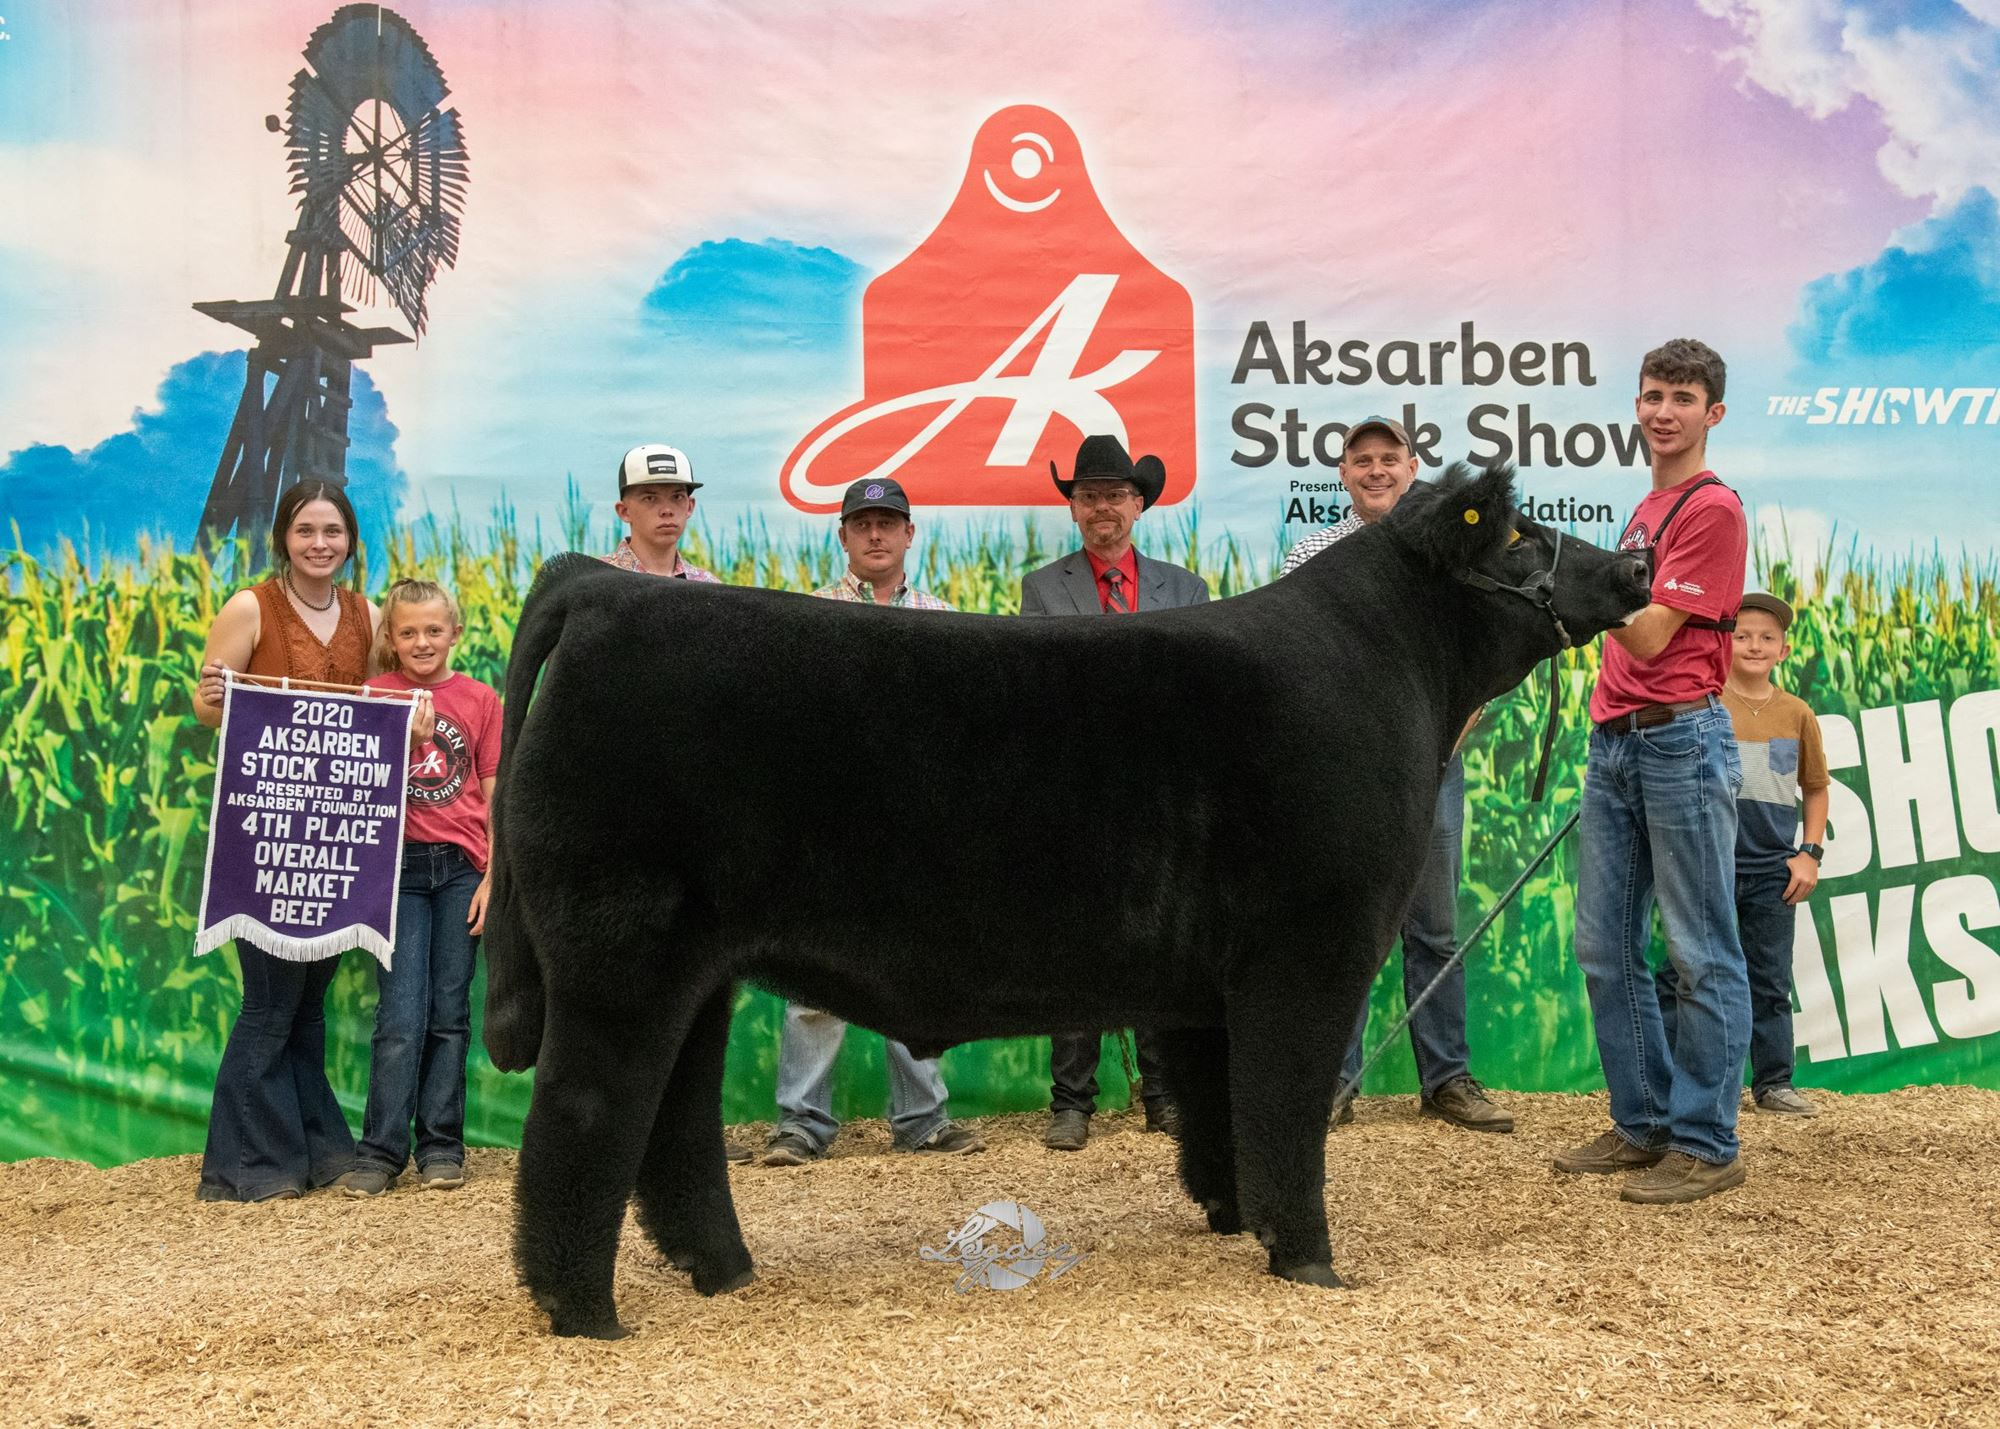 4th Overall Market Beef